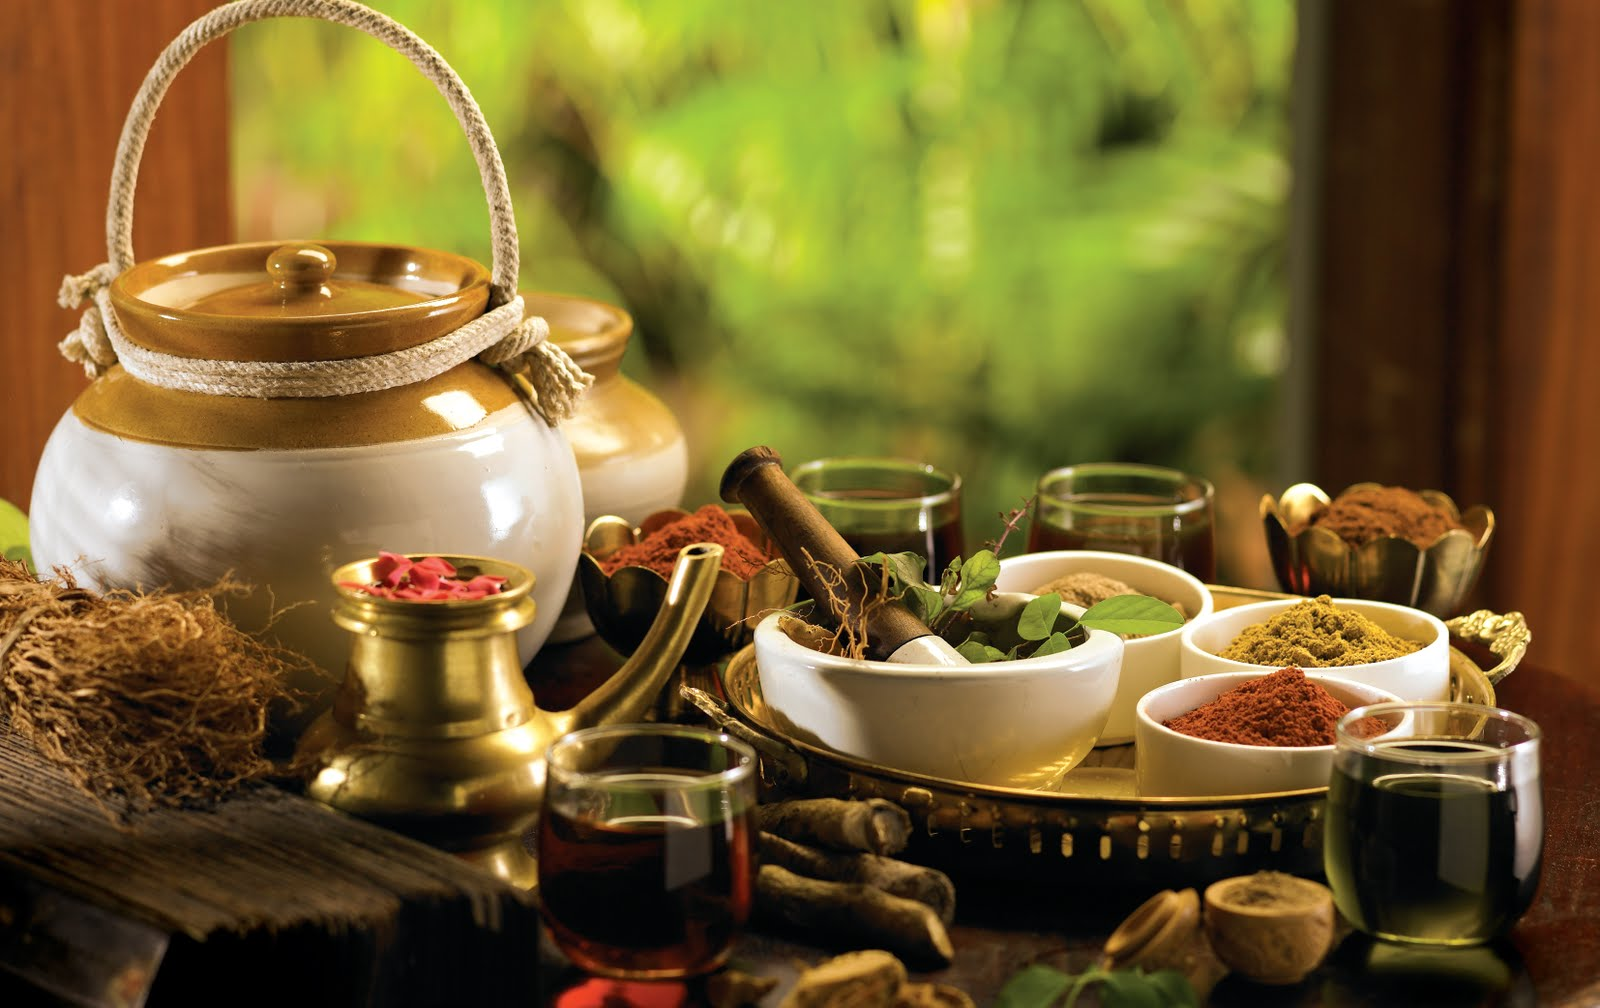 Ayurvedic - Global Market Outlook (2016-2022)